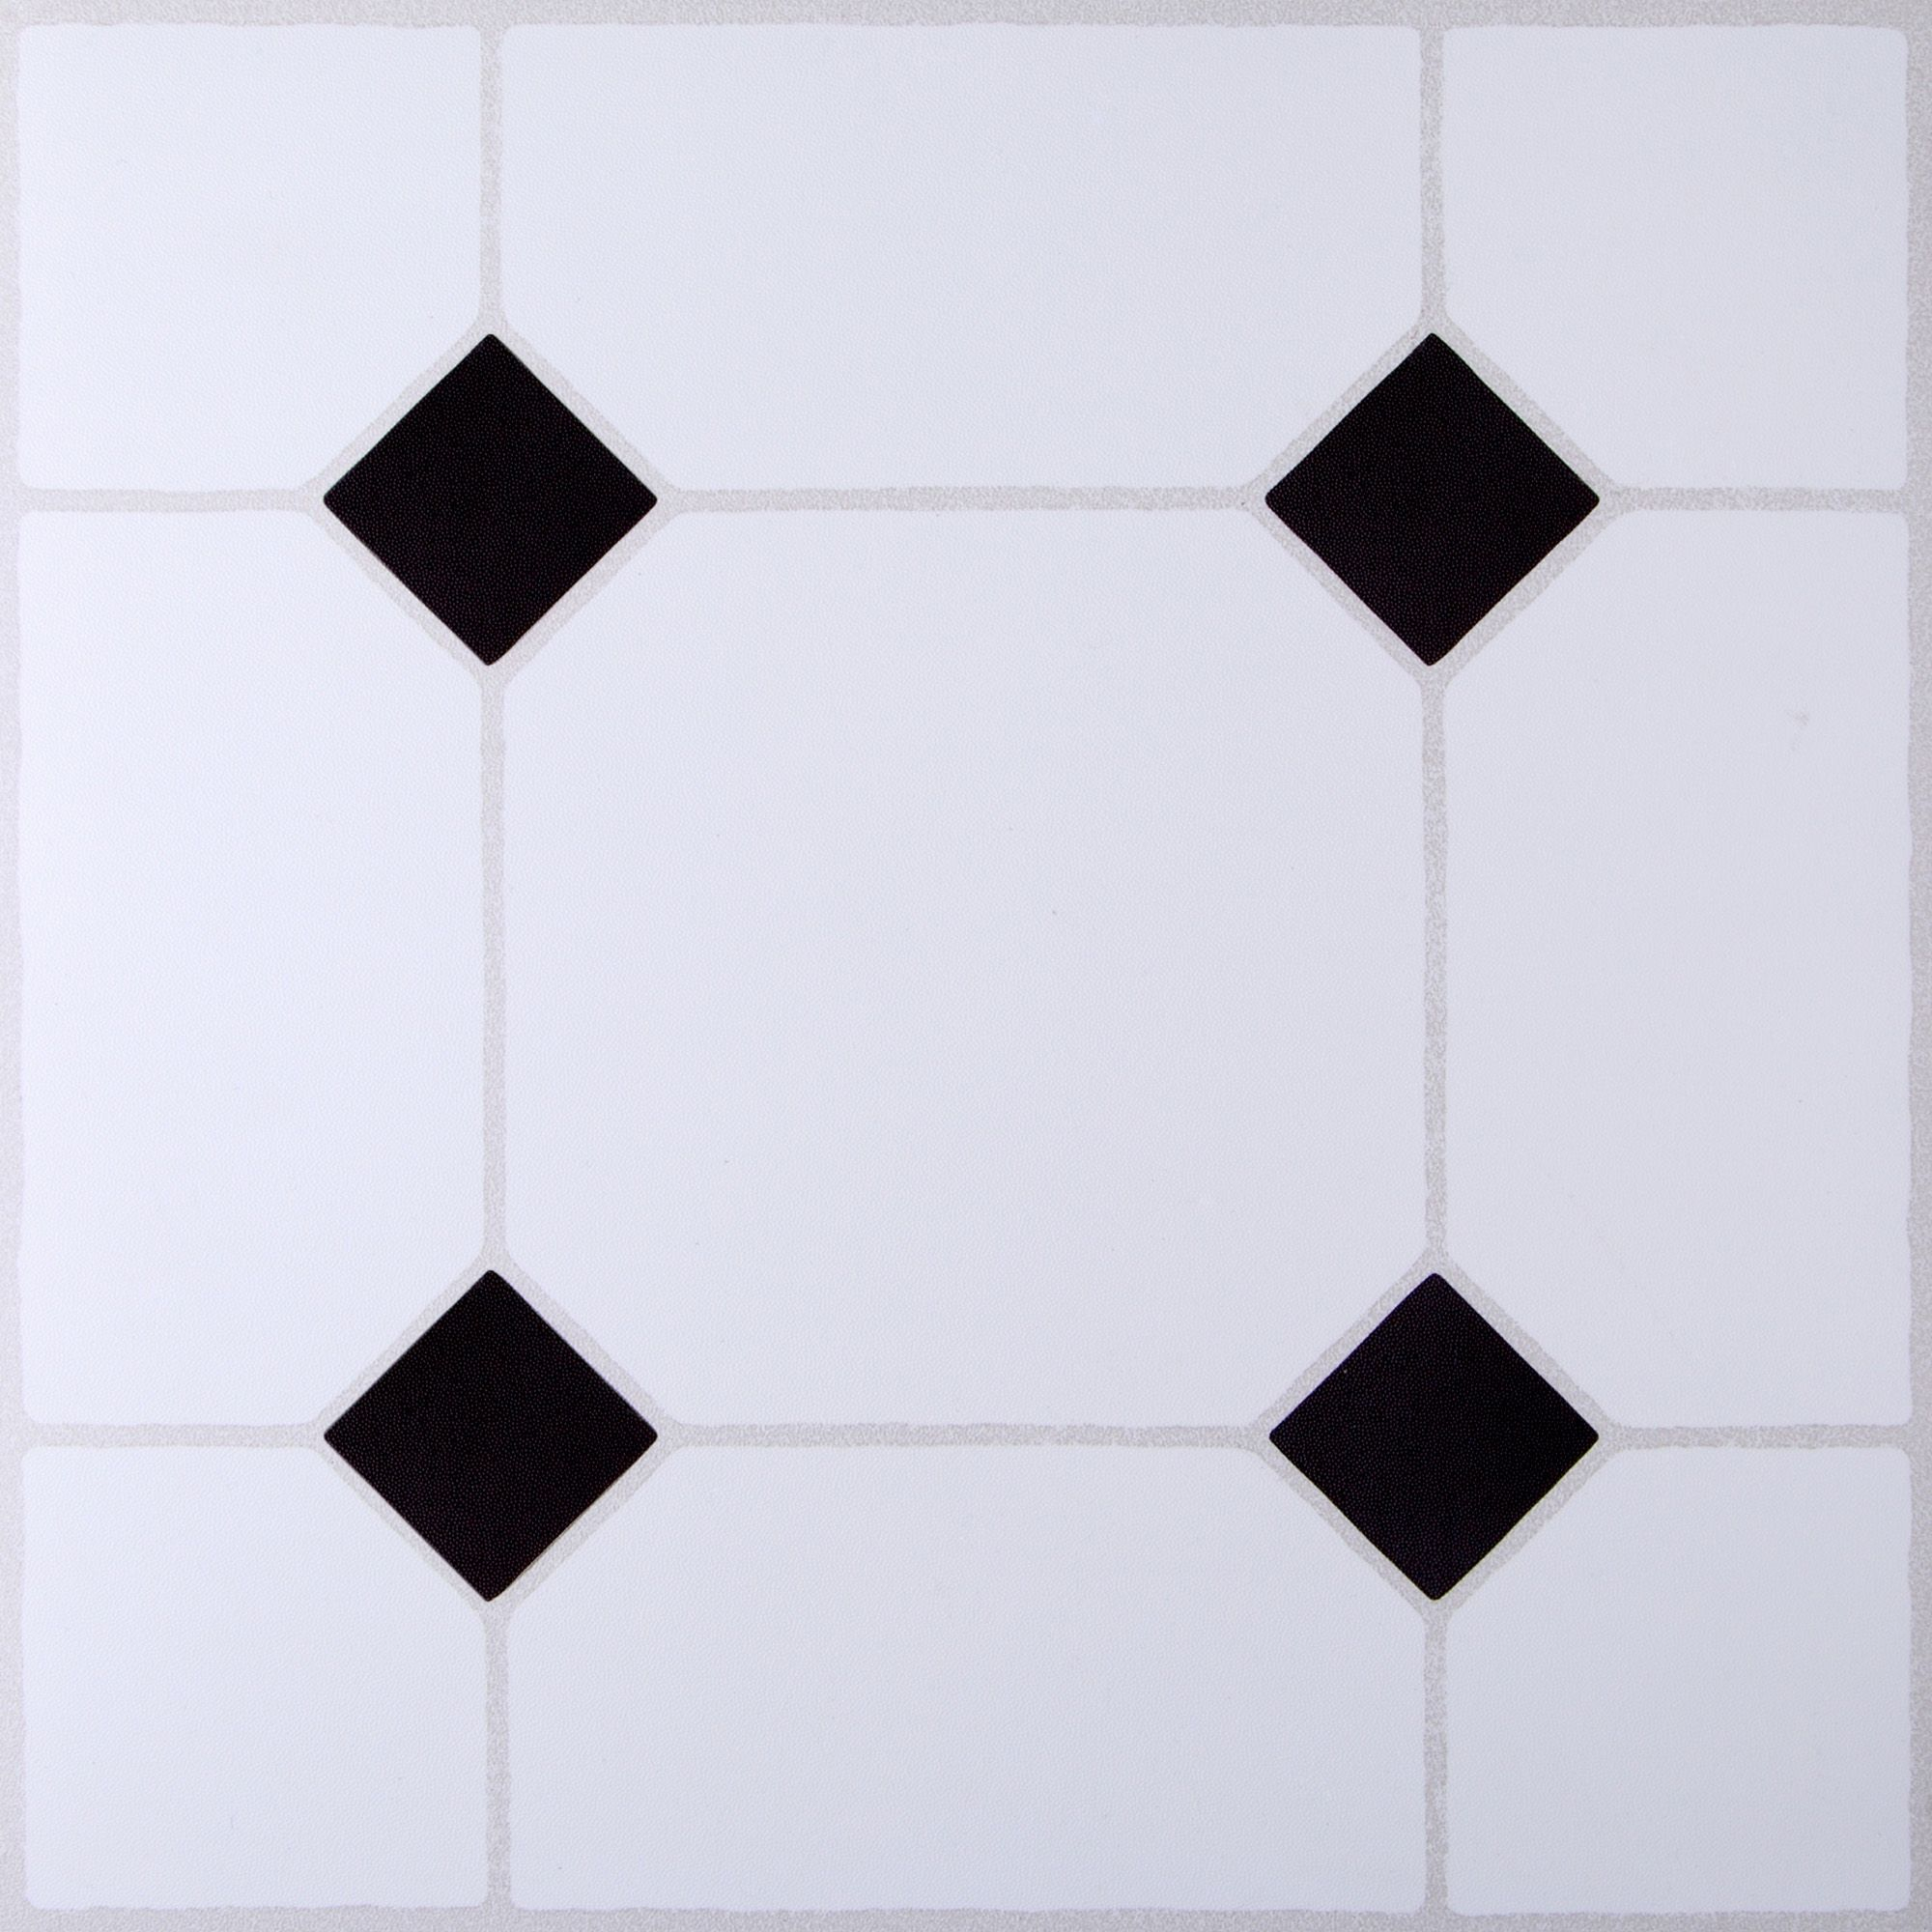 B&Q Black & White Tile Effect Self Adhesive Vinyl Tile 1.02m Pack